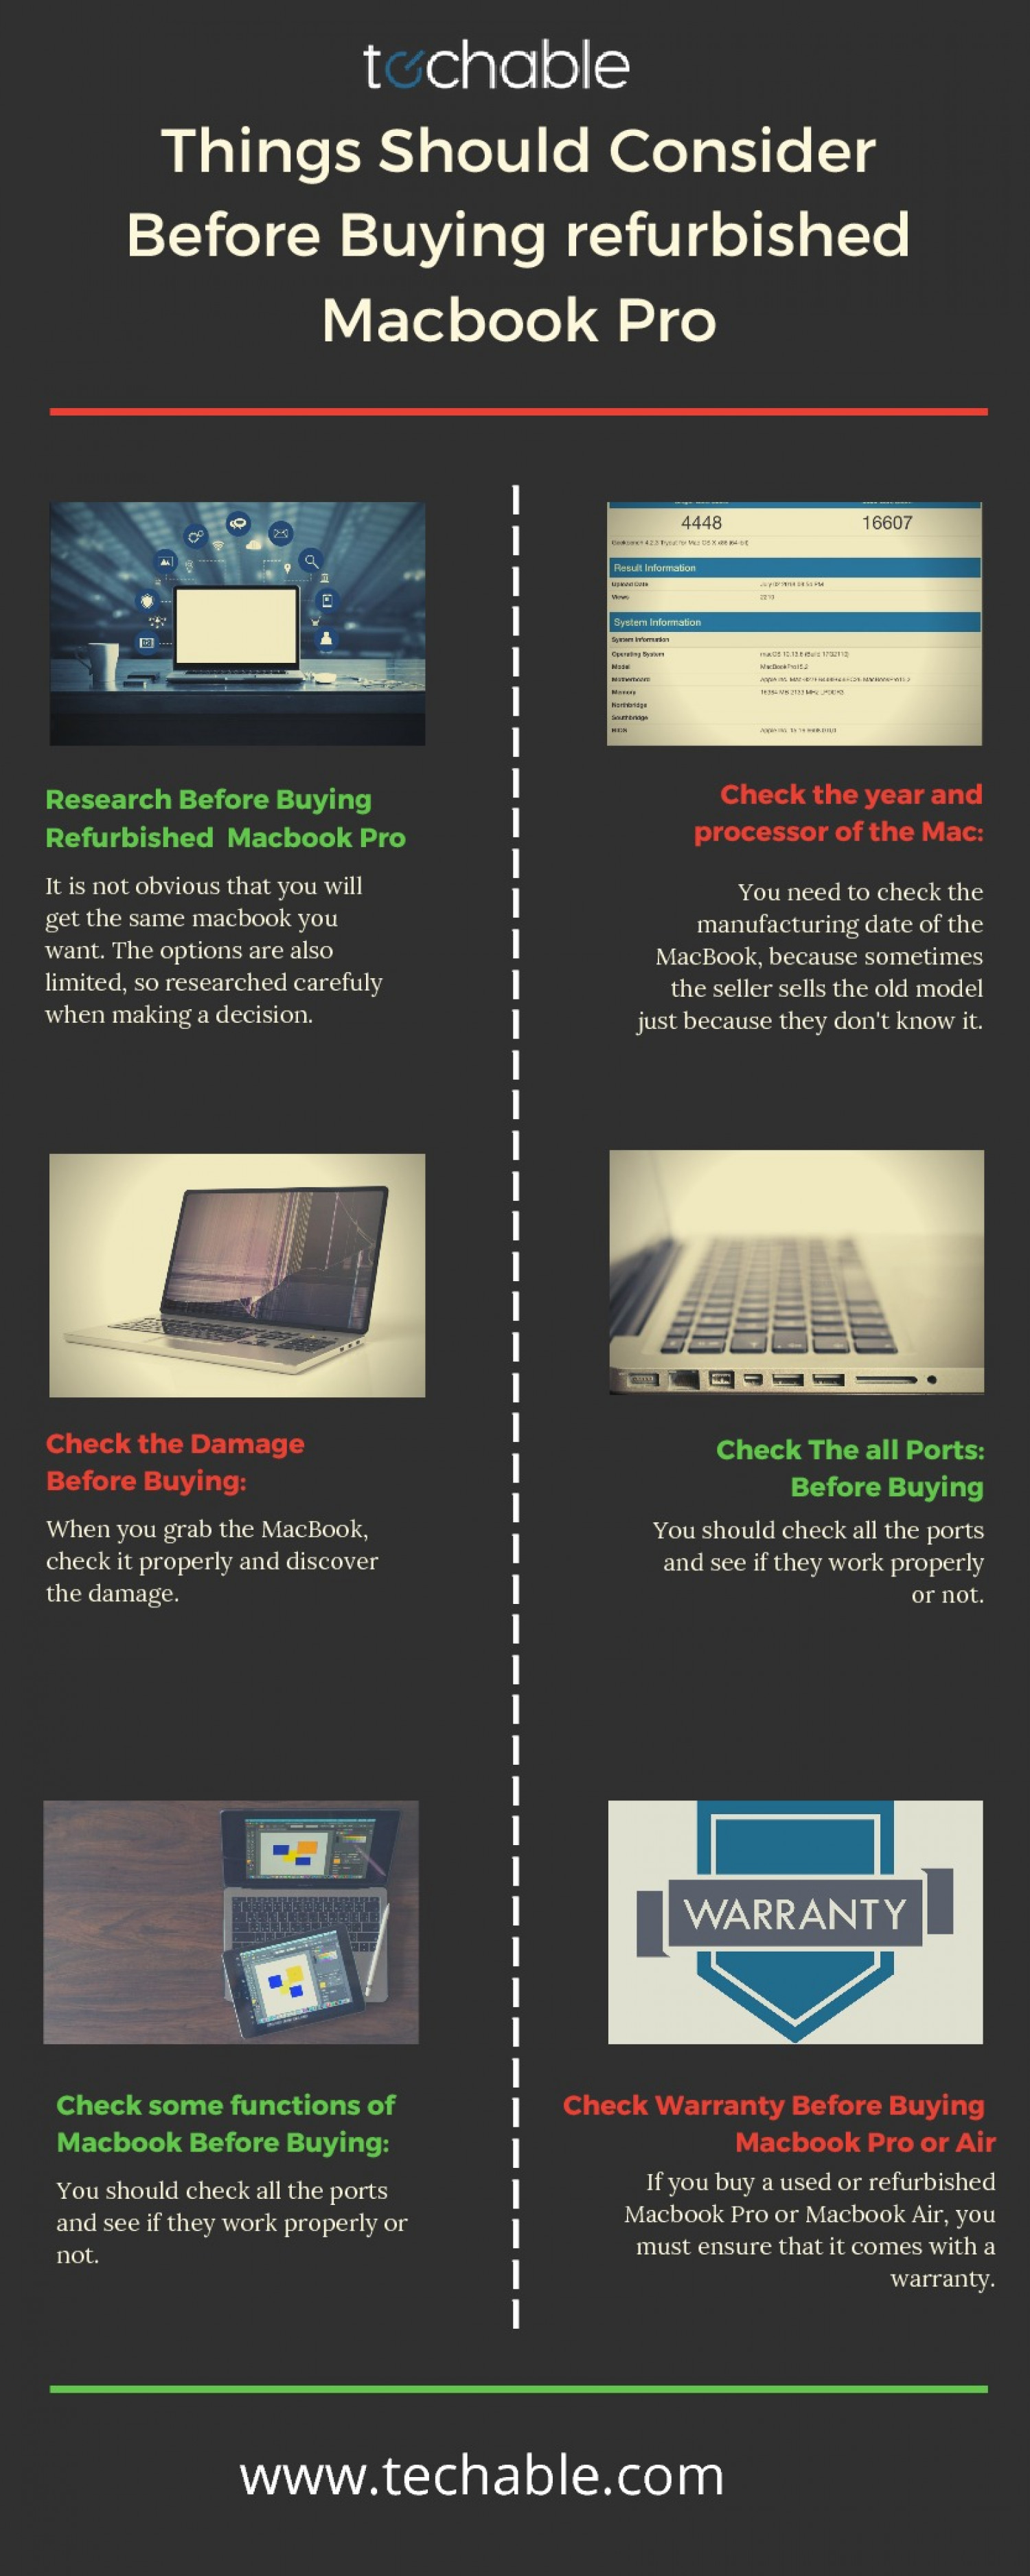 Things Should Consider Before Buying refurbished Macbook Pro Infographic